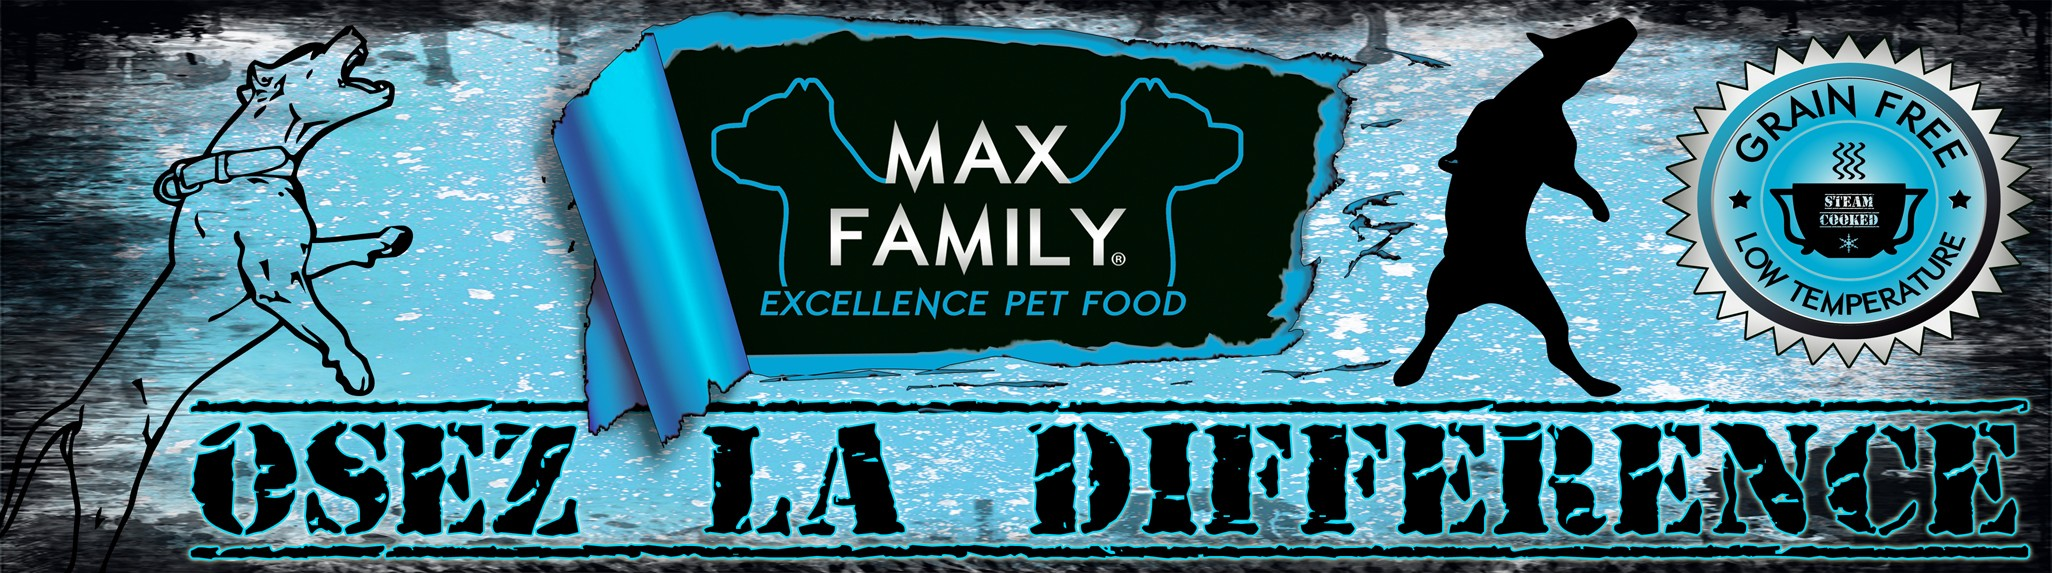 OSEZ LA DIFFERENCE - MAX FAMILY